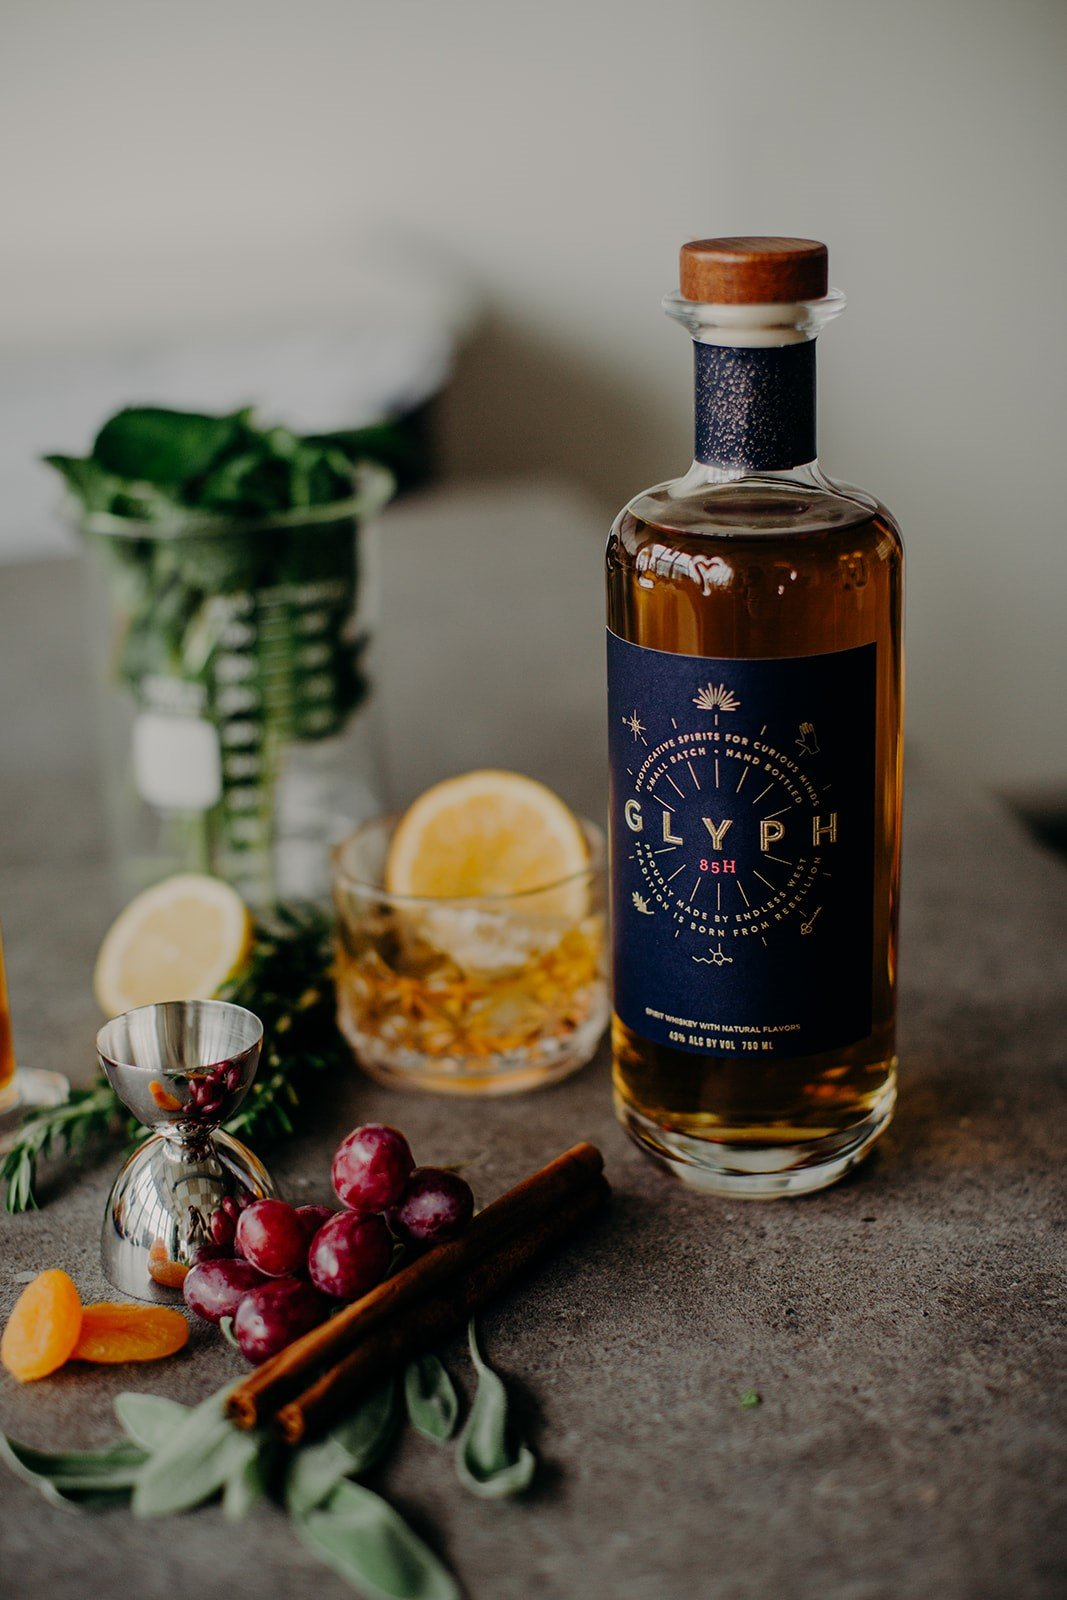 016780d96b6 If you haven't already heard the kooky story of Endless West and Glyph,  well, pull up a chair. Glyph 85H is a whiskey unlike any other. How so?